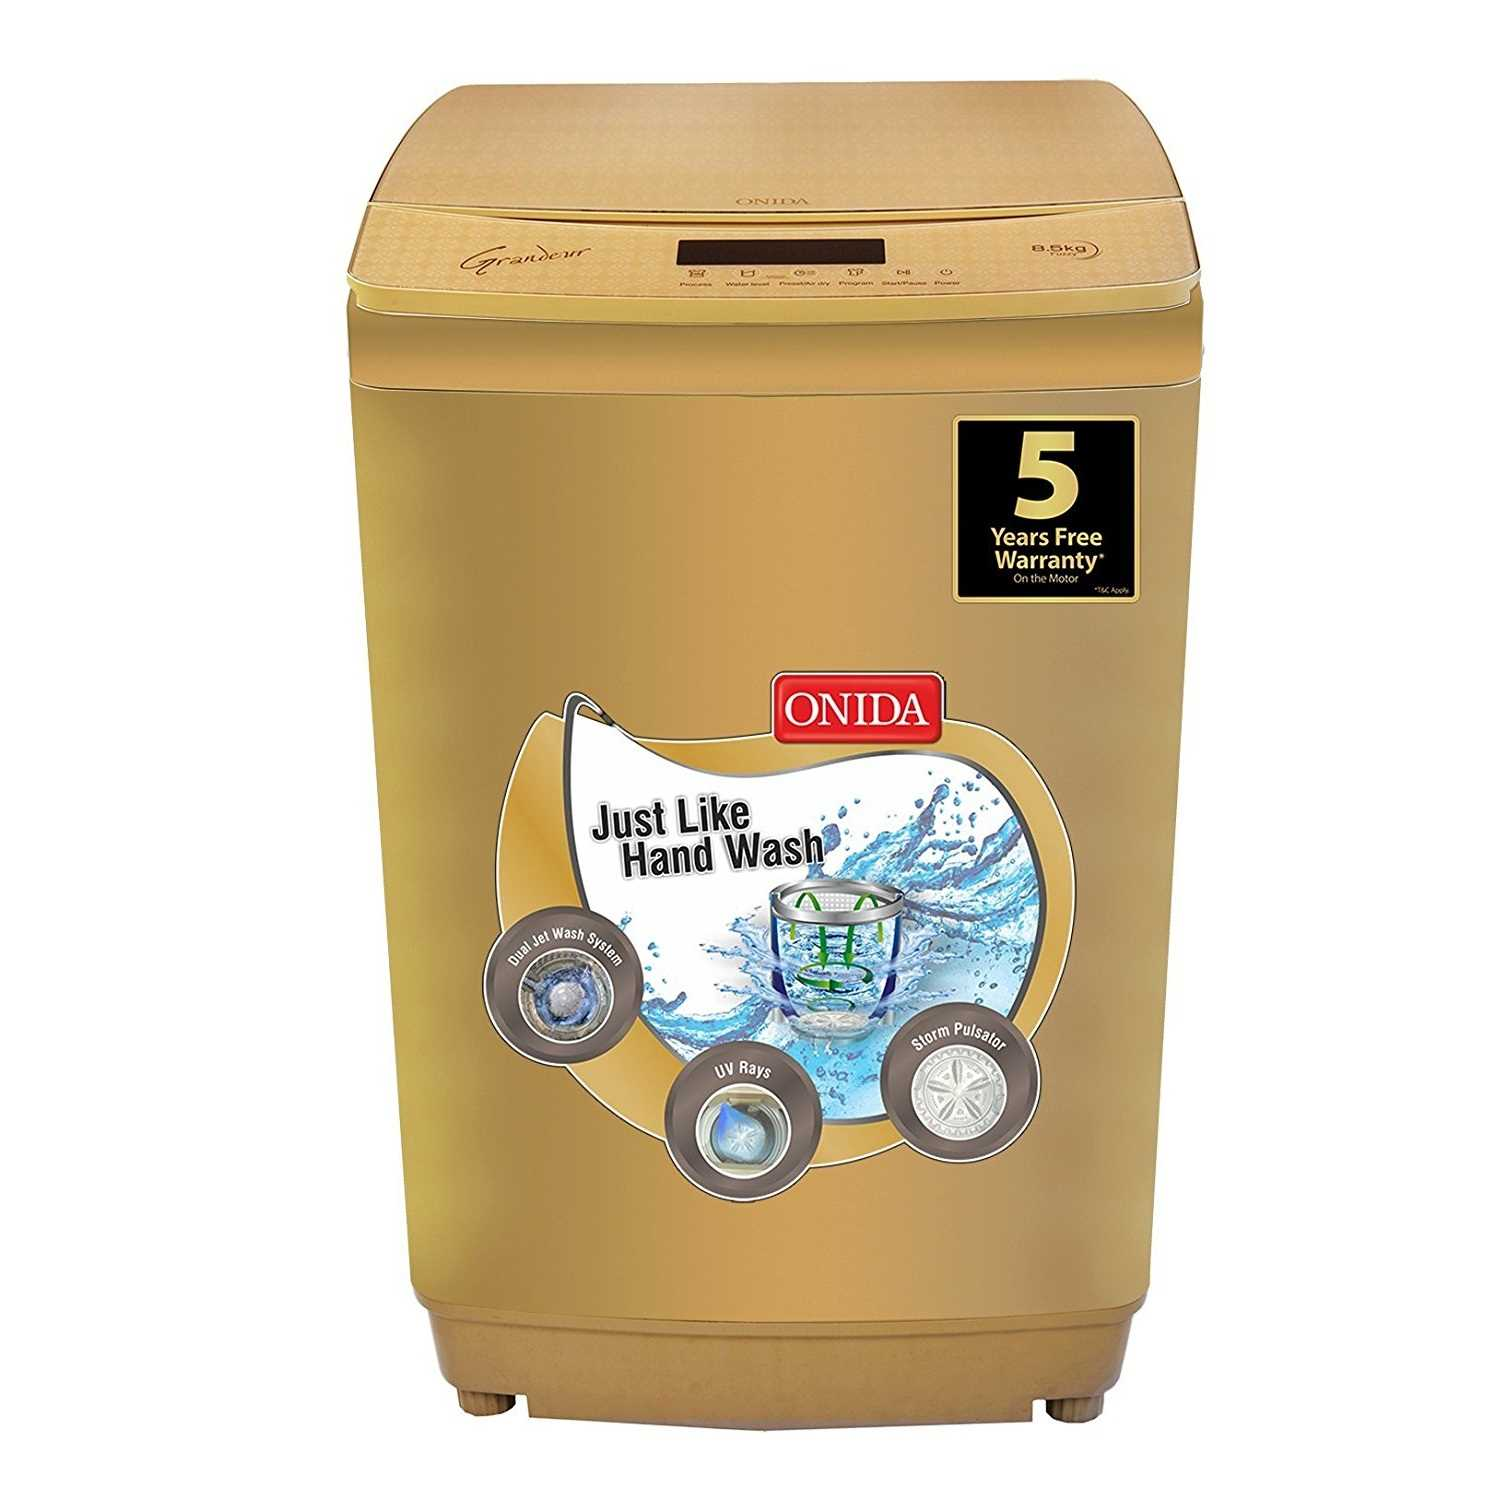 Onida Grandeur T85GRDD 8.5 Kg Fully Automatic Top Loading Washing Machine